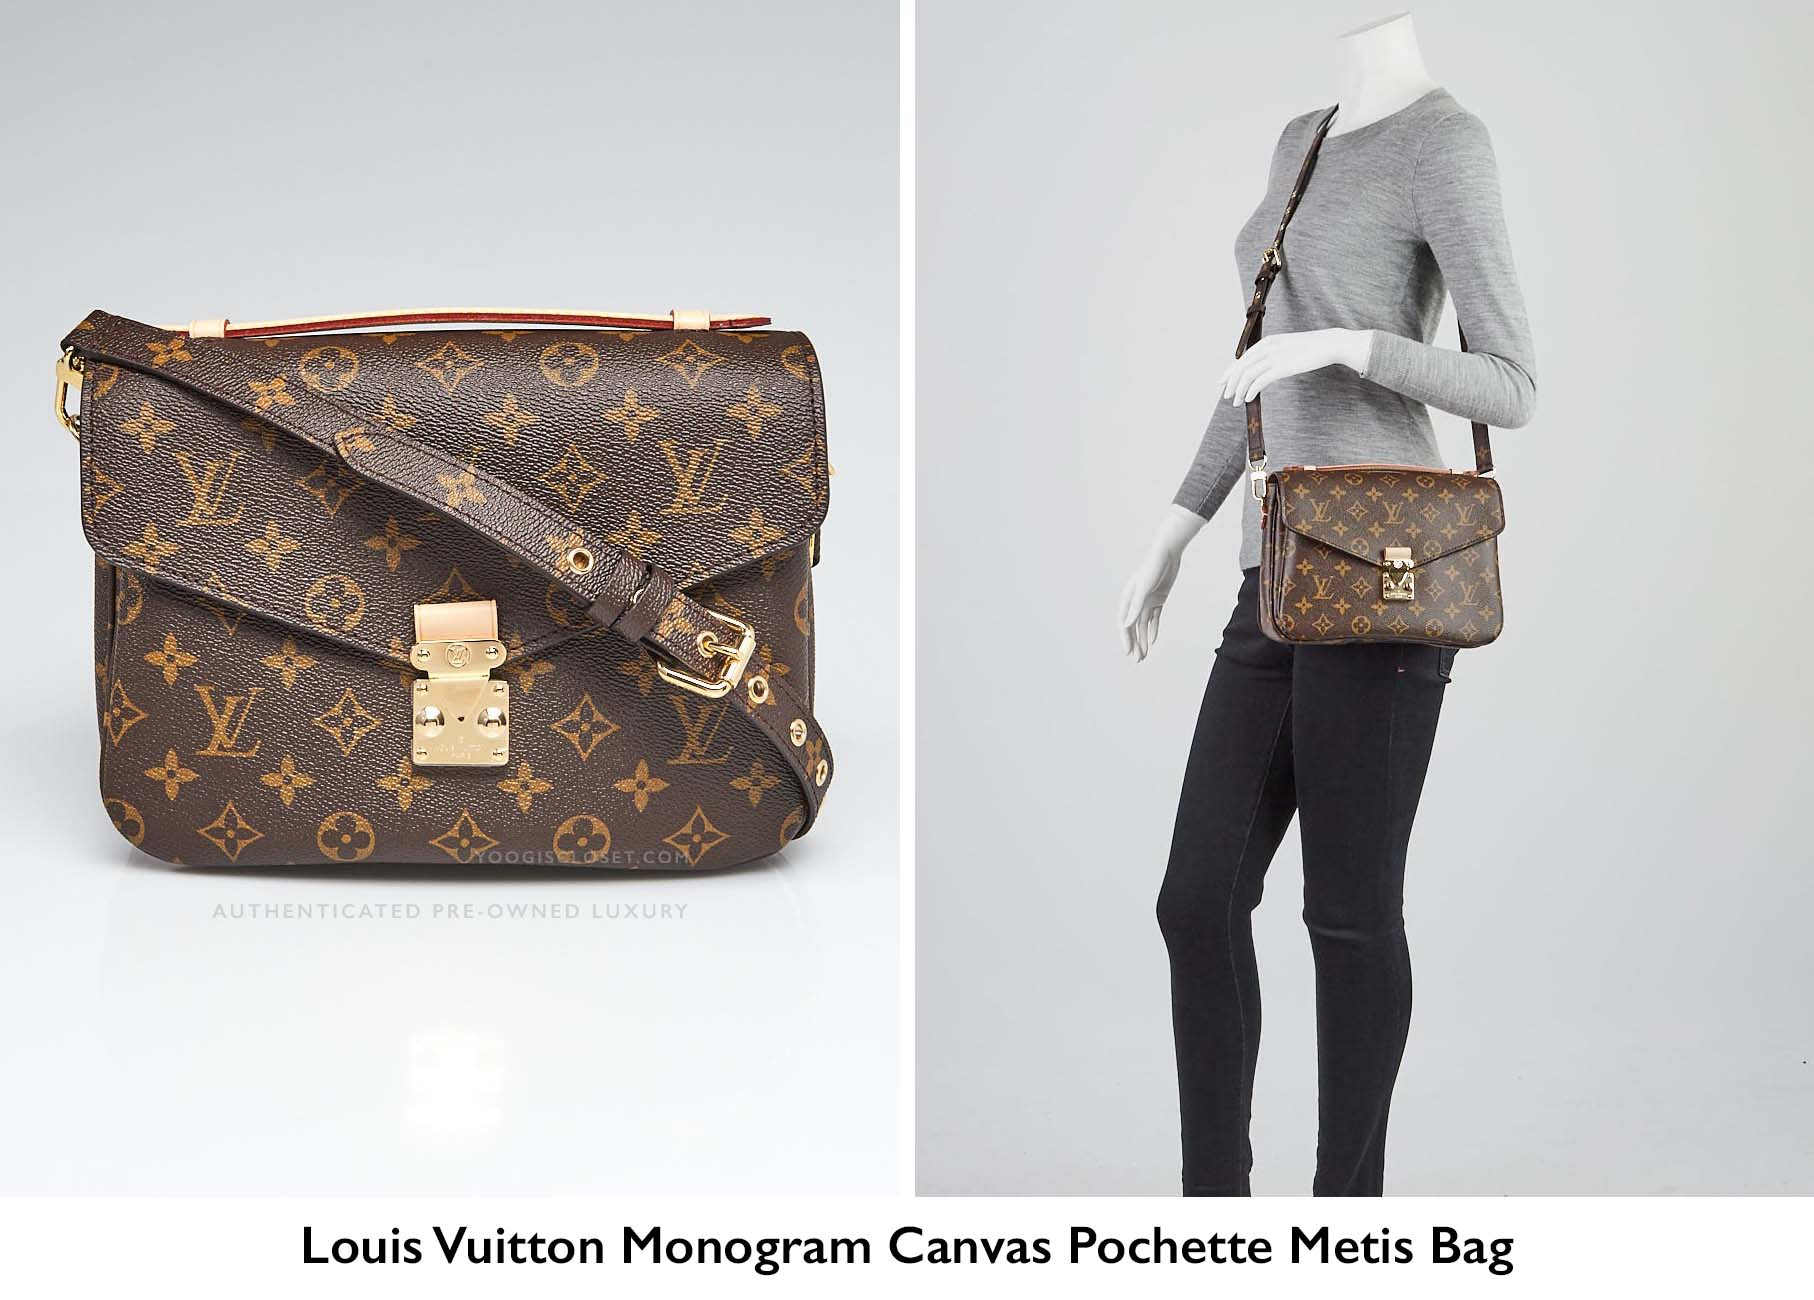 Authentic Louis Vuitton Monogram Canvas Pochette Metis Crossbody Bag 98e93d4740305